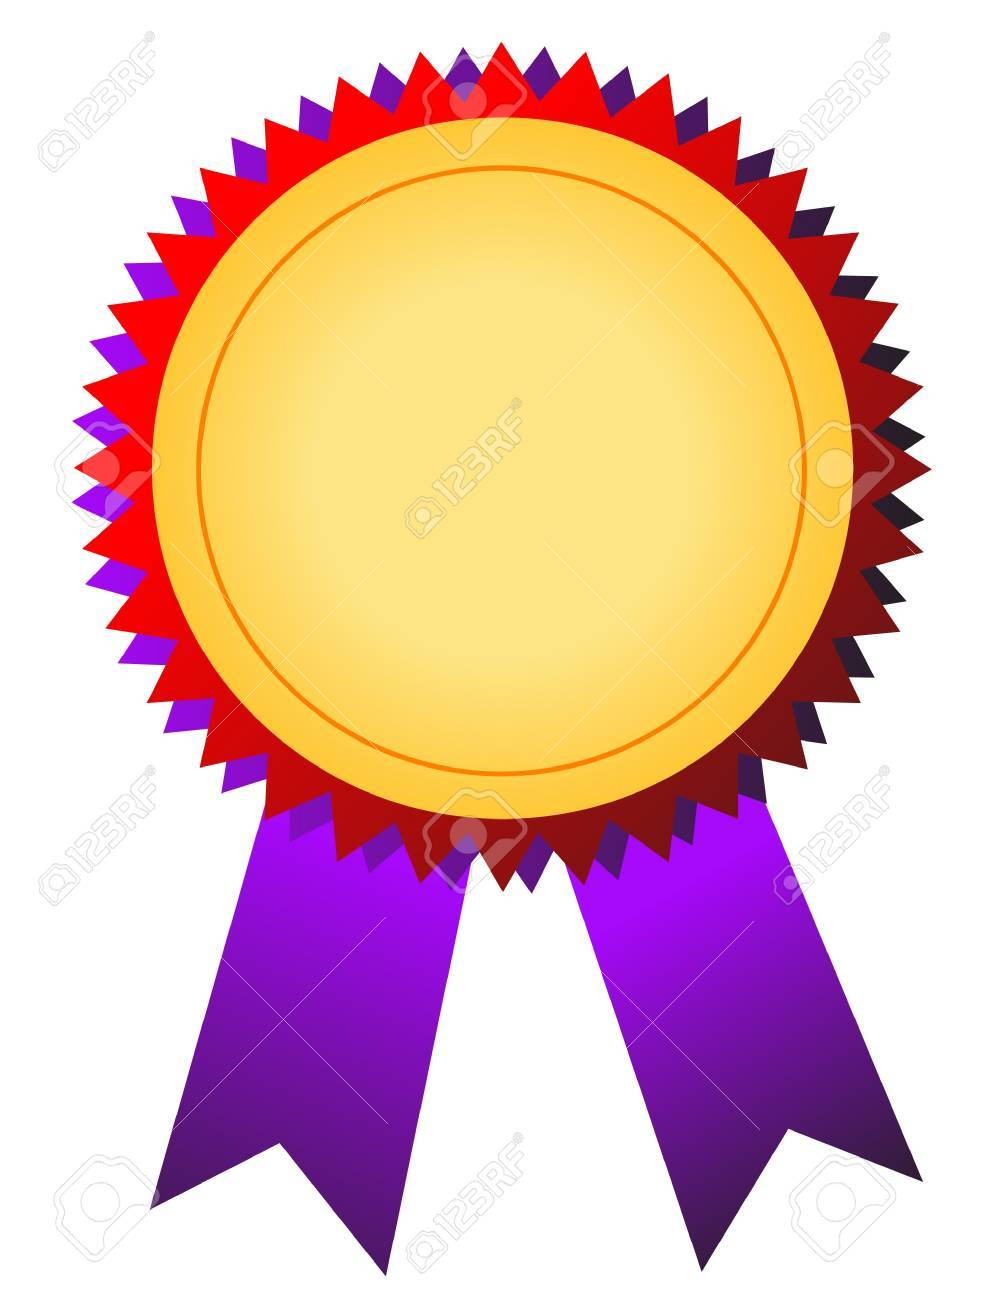 Medaille clipart free library Clipart médaille dor 7 » Clipart Portal free library